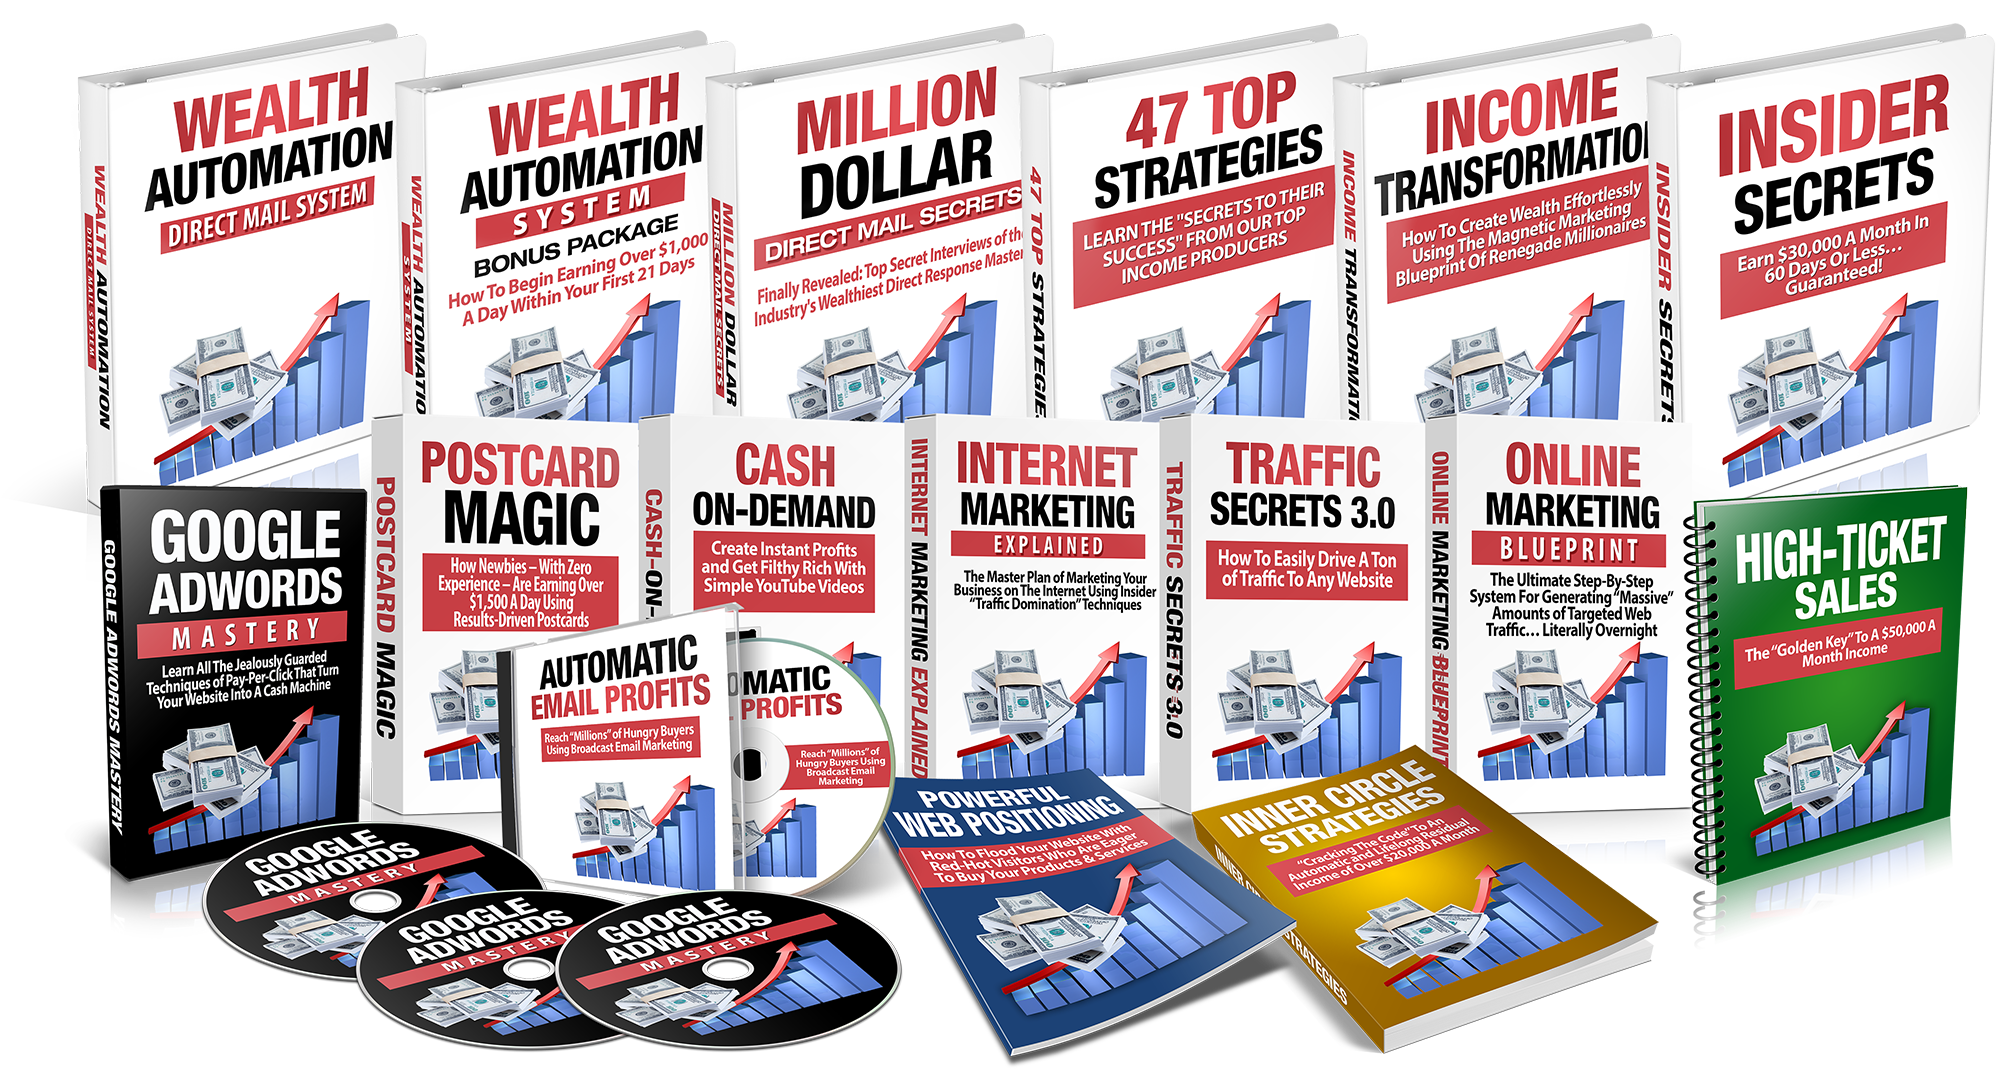 Wealth automation system is a scam read this before you buy wealth wealth automation system is a scam read this before you buy wealth automation system malvernweather Images